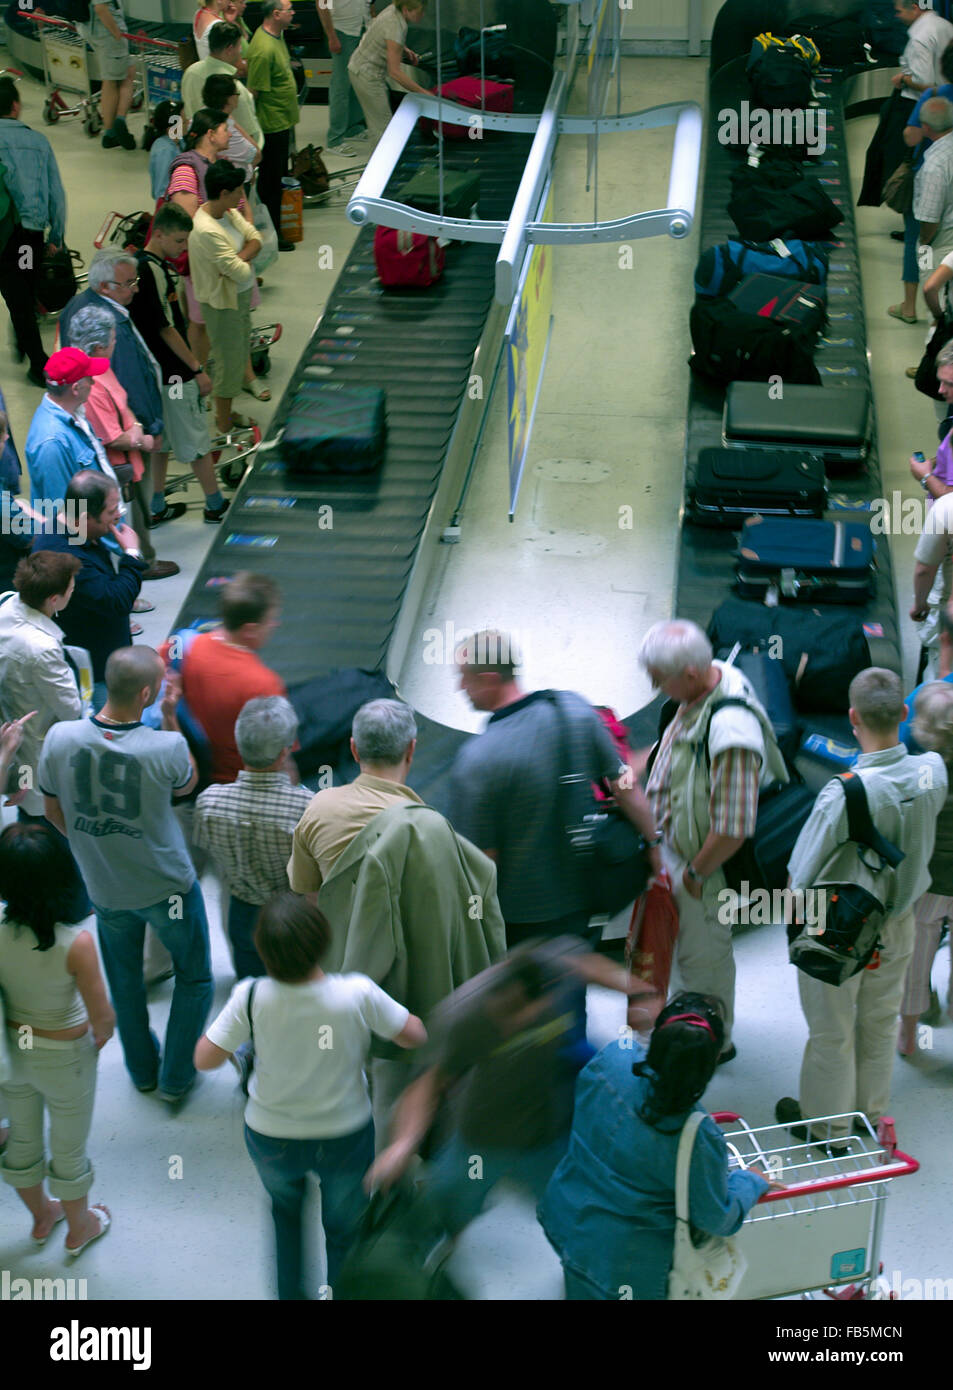 People at the airport waiting for their luggage at the Baggage conveyor belt - Stock Image